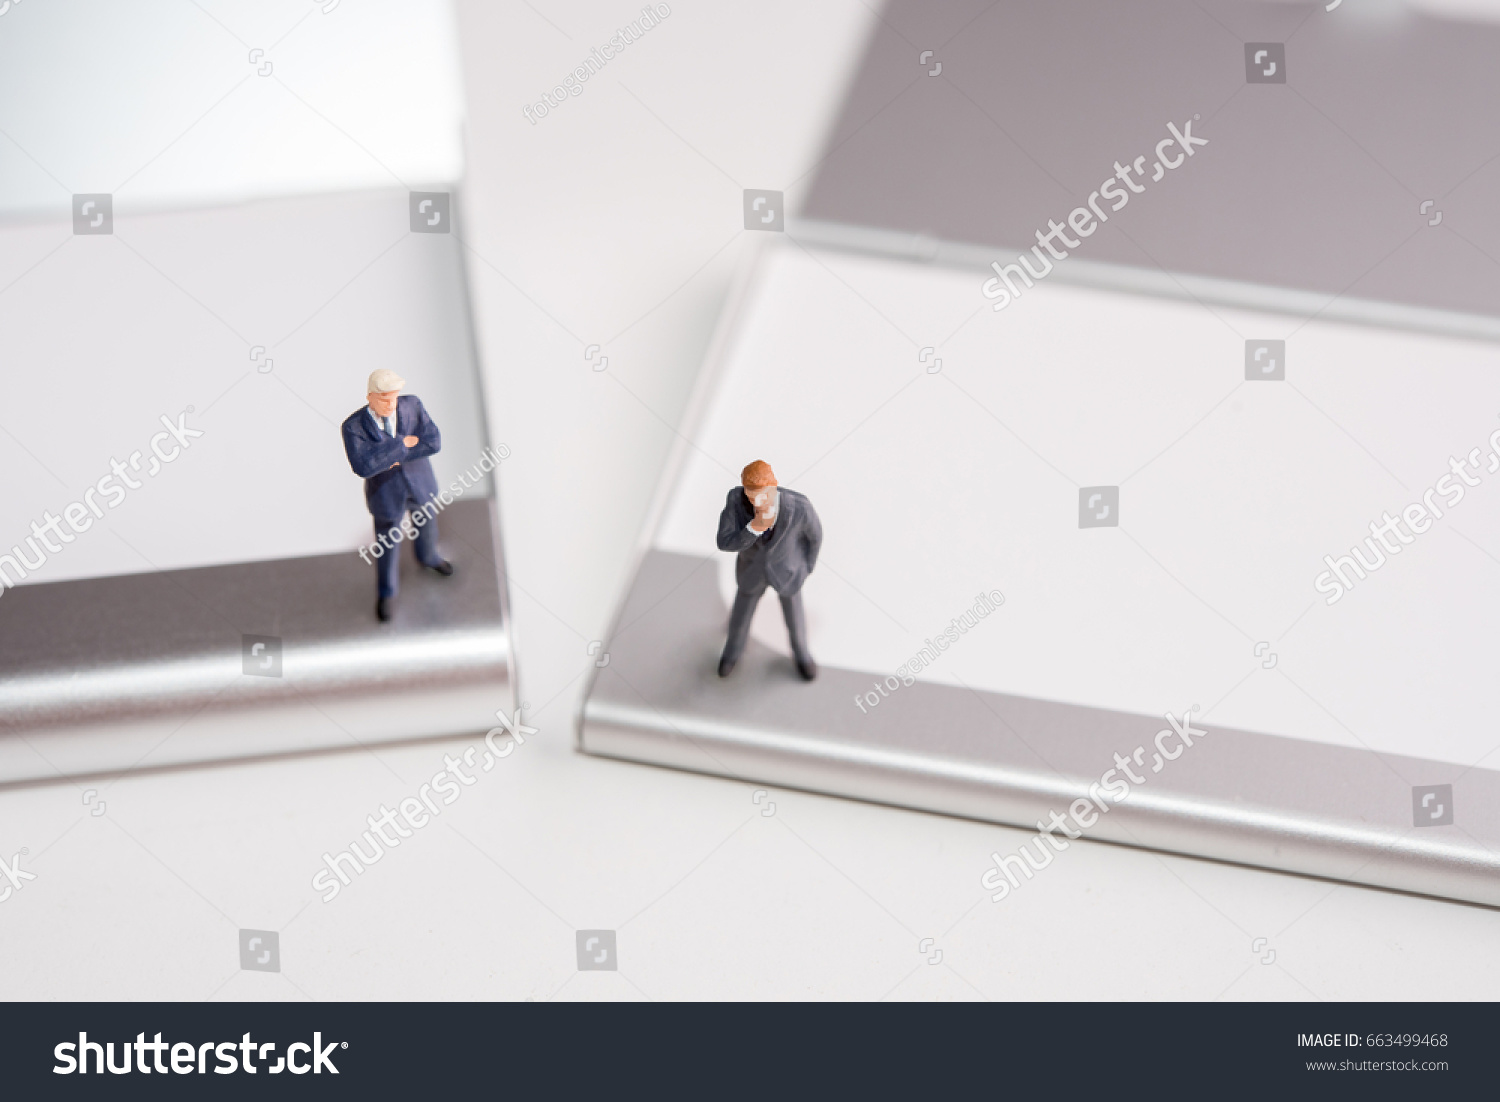 Miniature Figure Business Man Stand On Stock Photo 663499468 ...